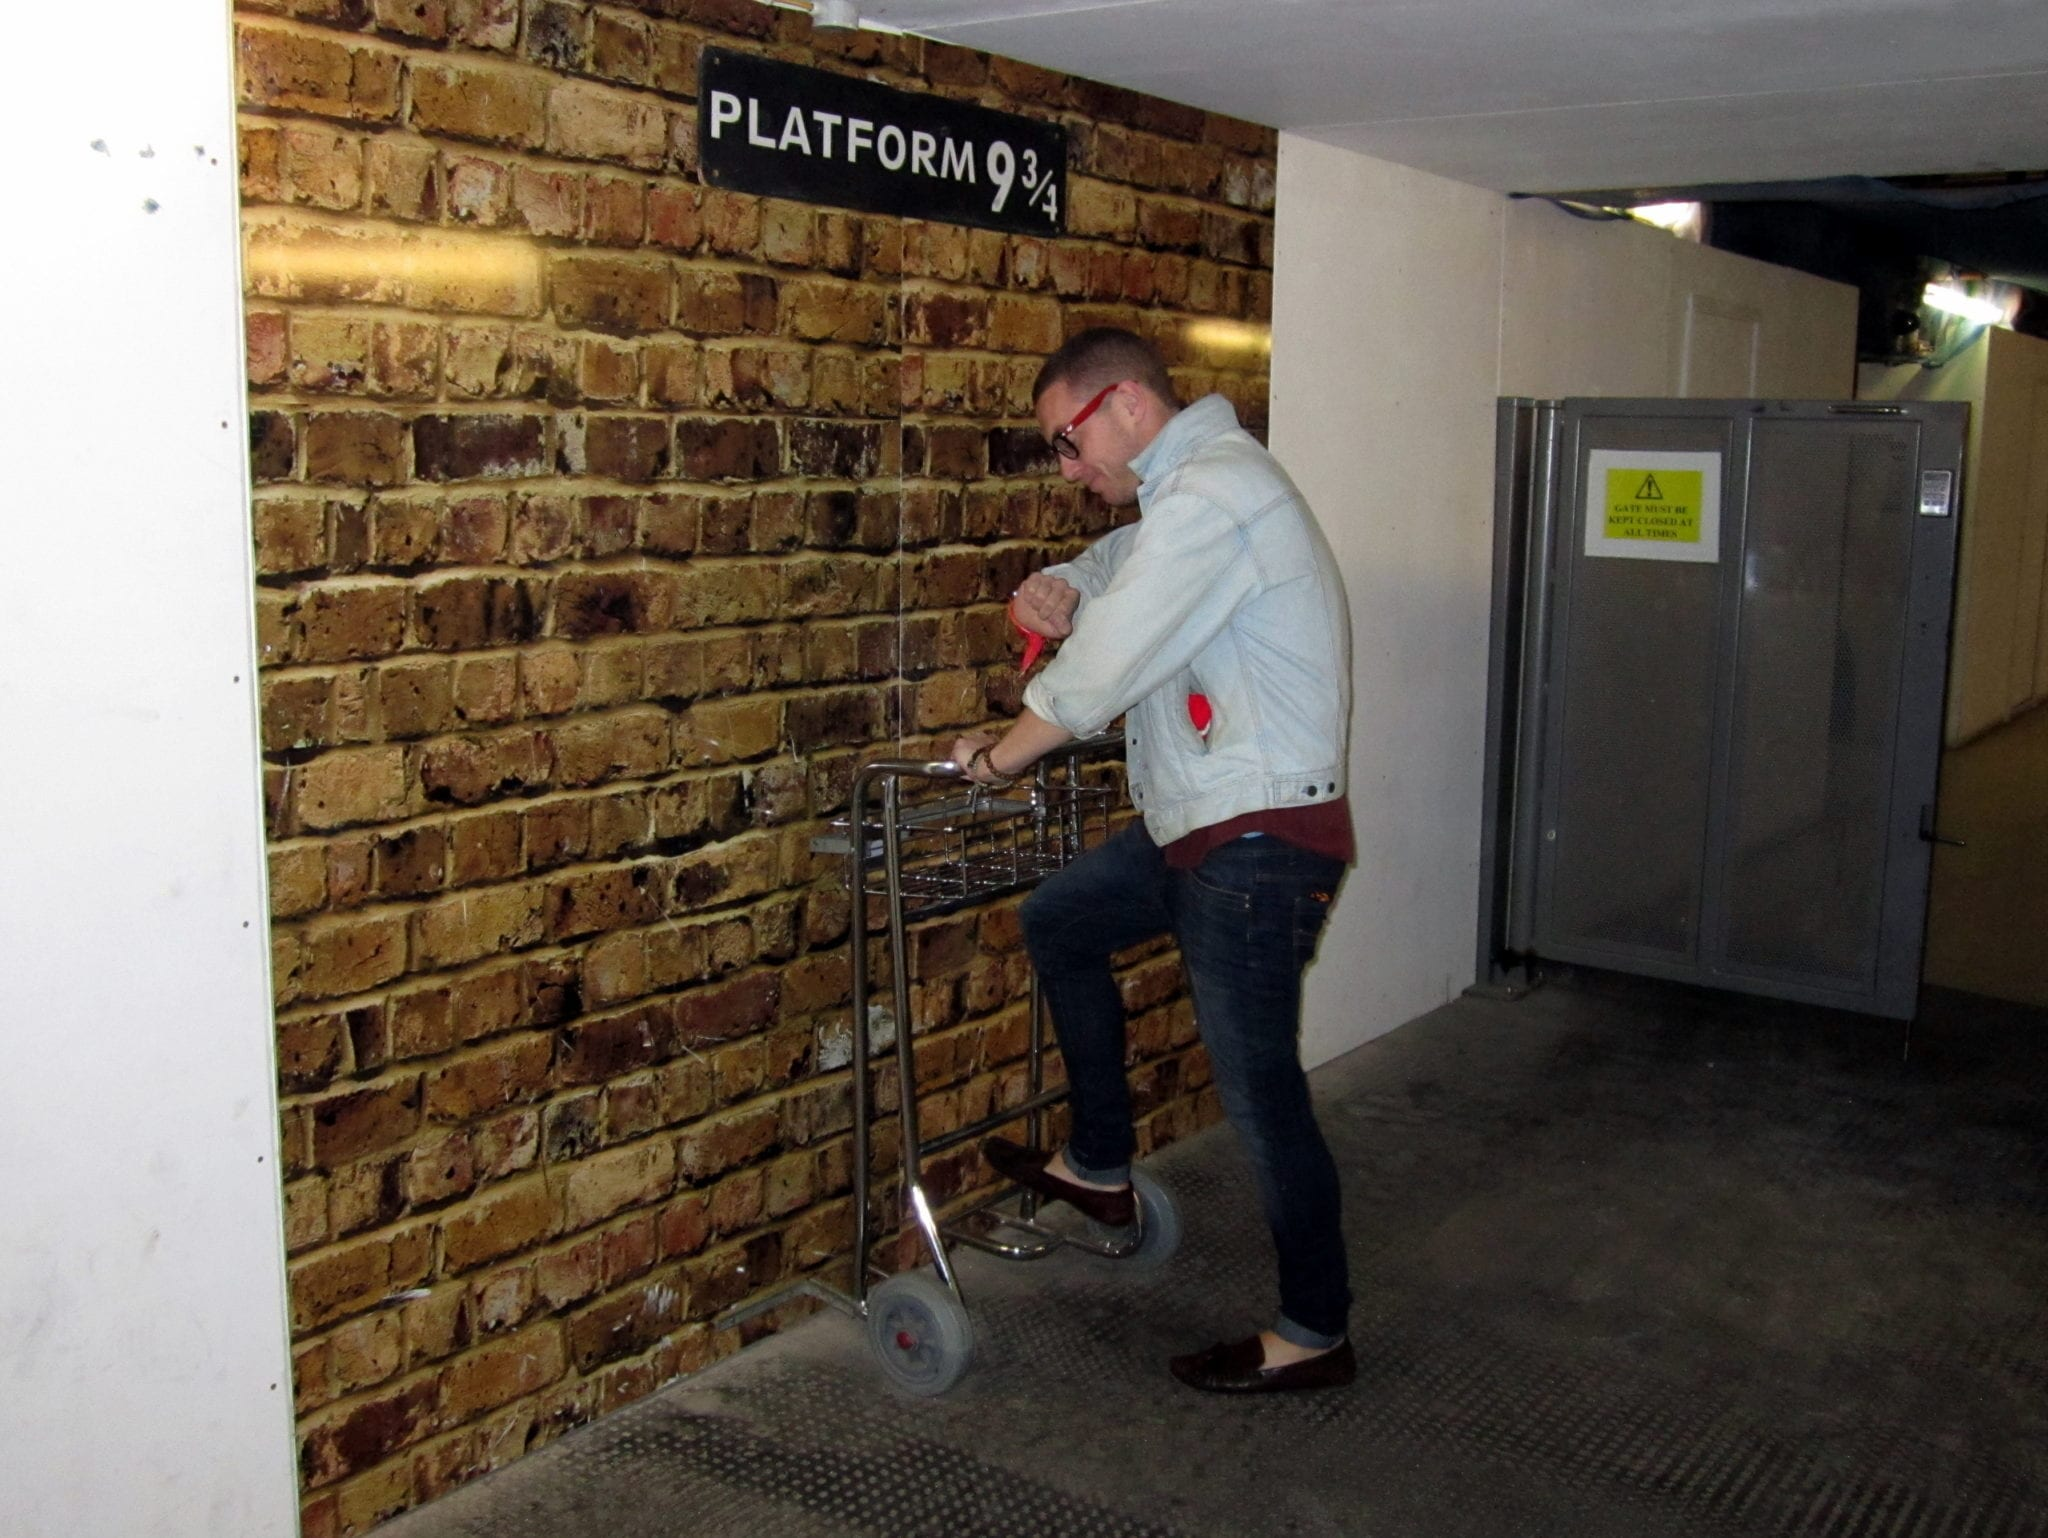 In the books, Platform 9 3/4 ...